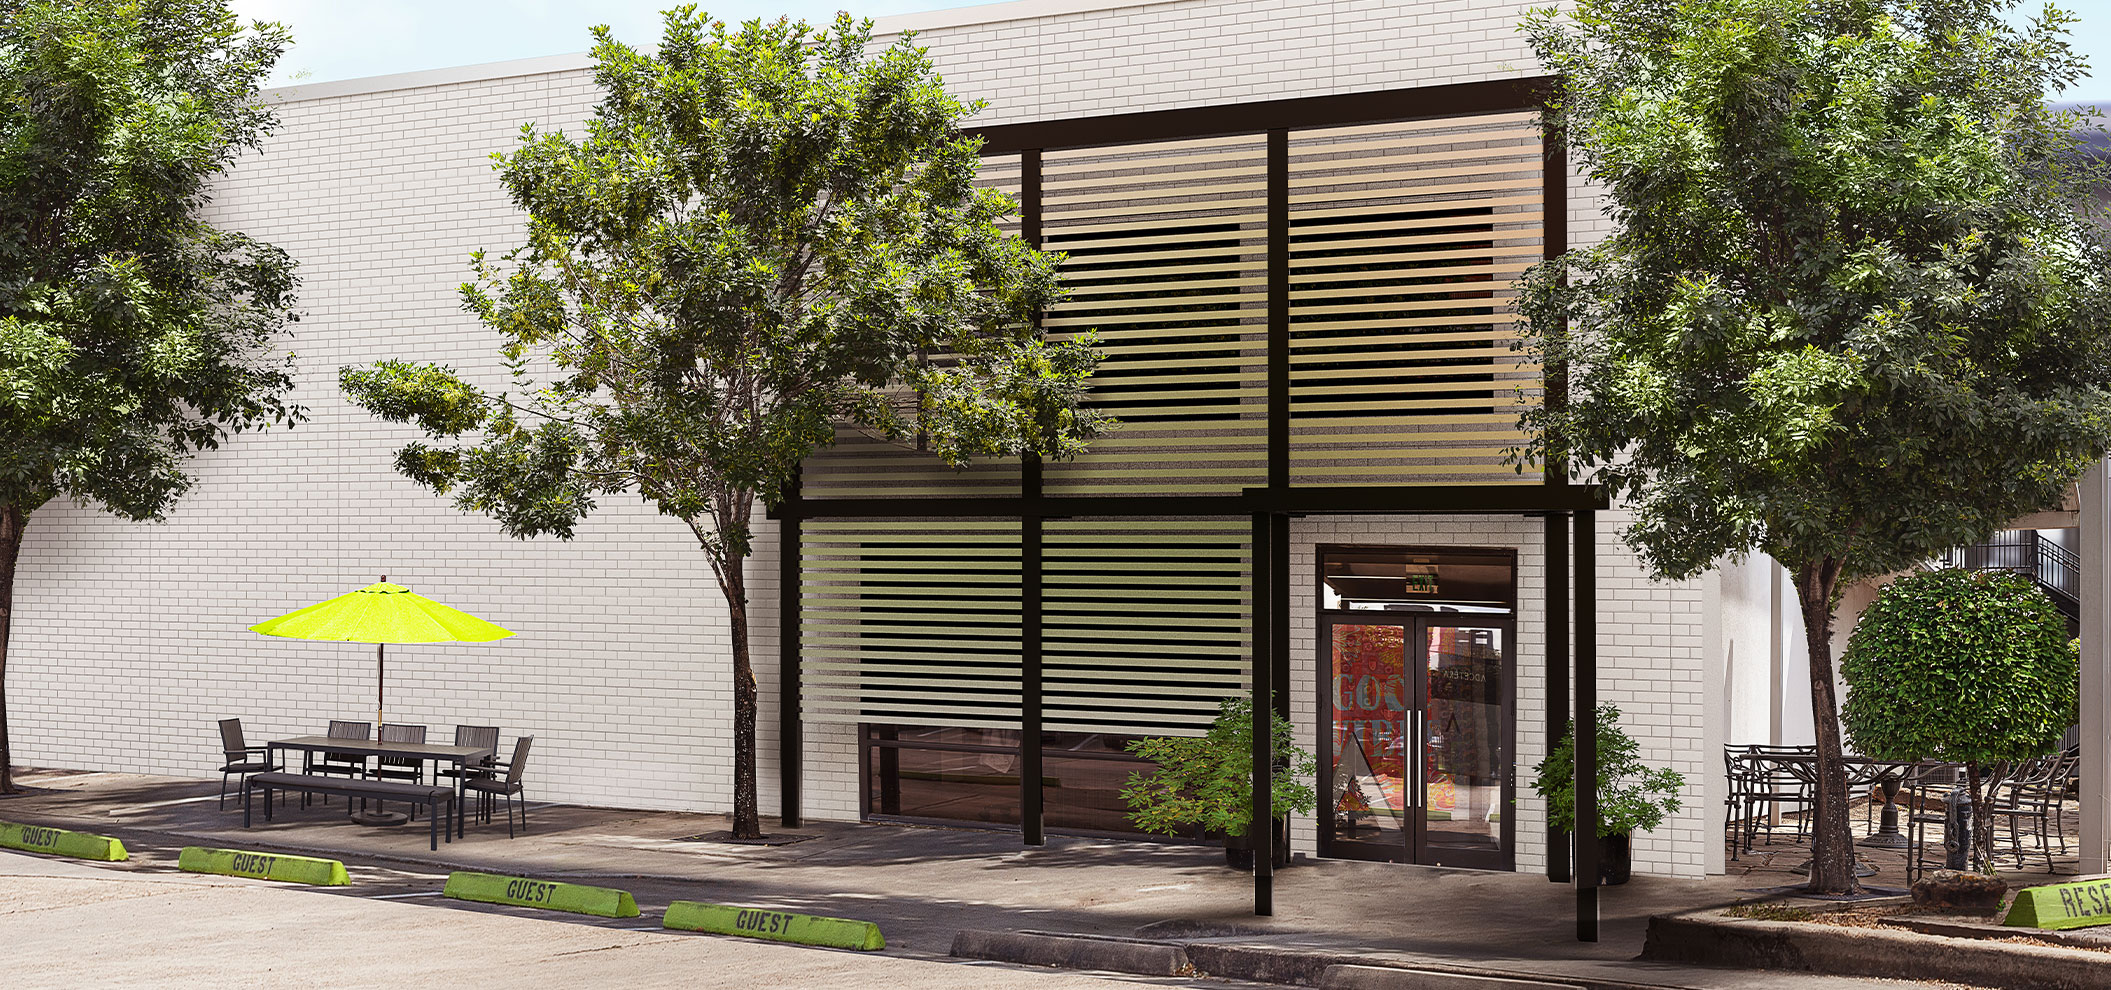 exterior building photo of Adcetera Midtown office